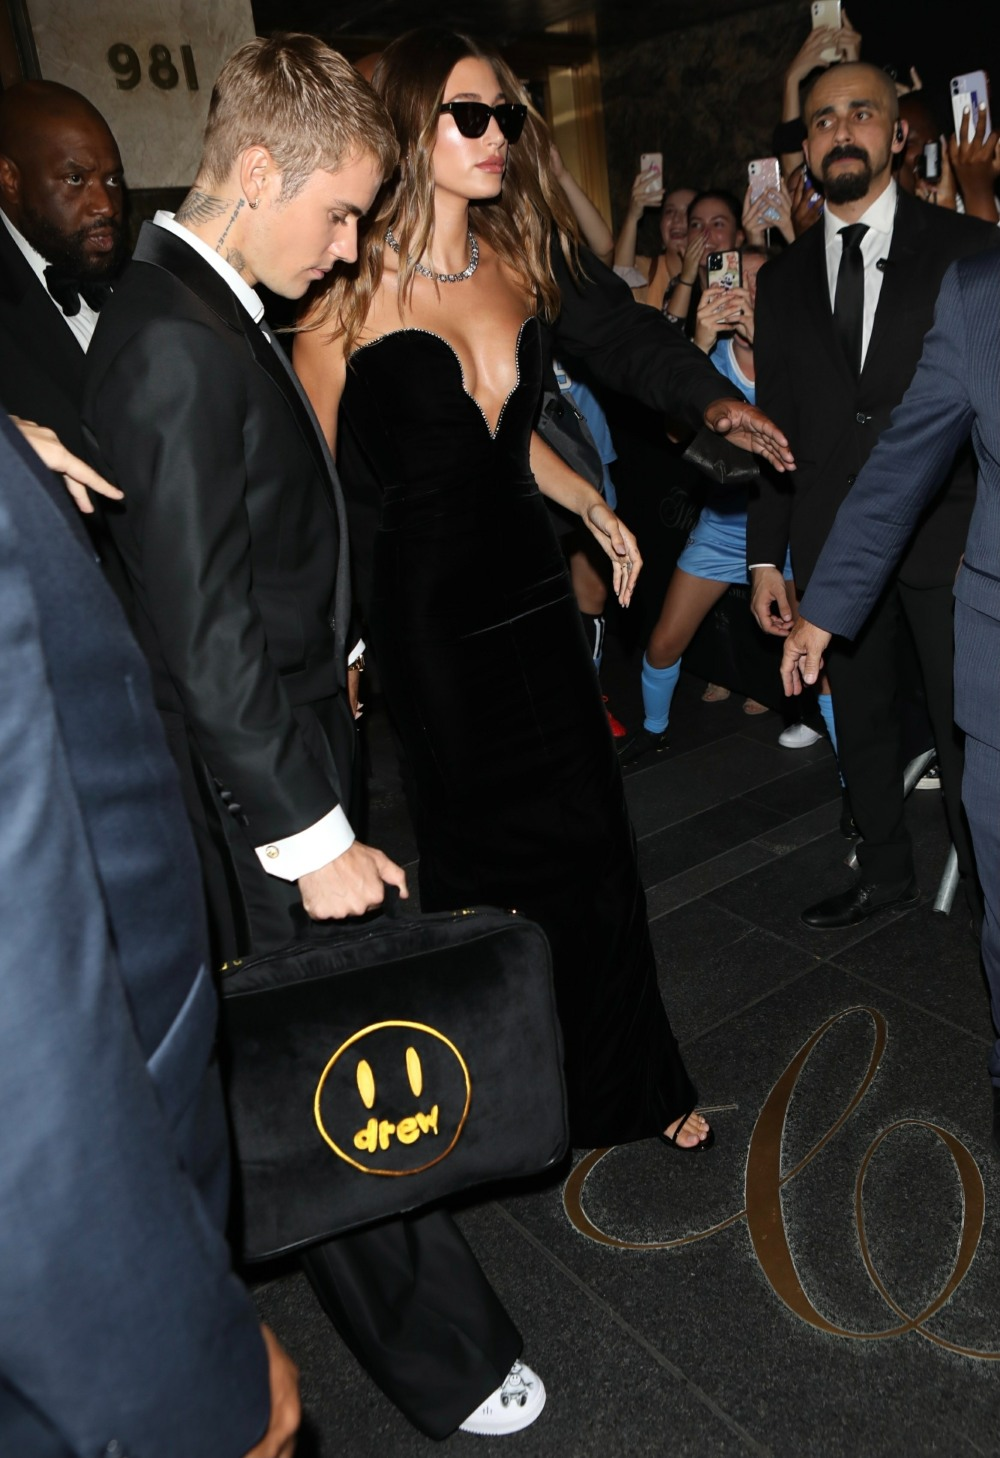 Justin and Hailey Bieber leave the hotel to attend the Met gala